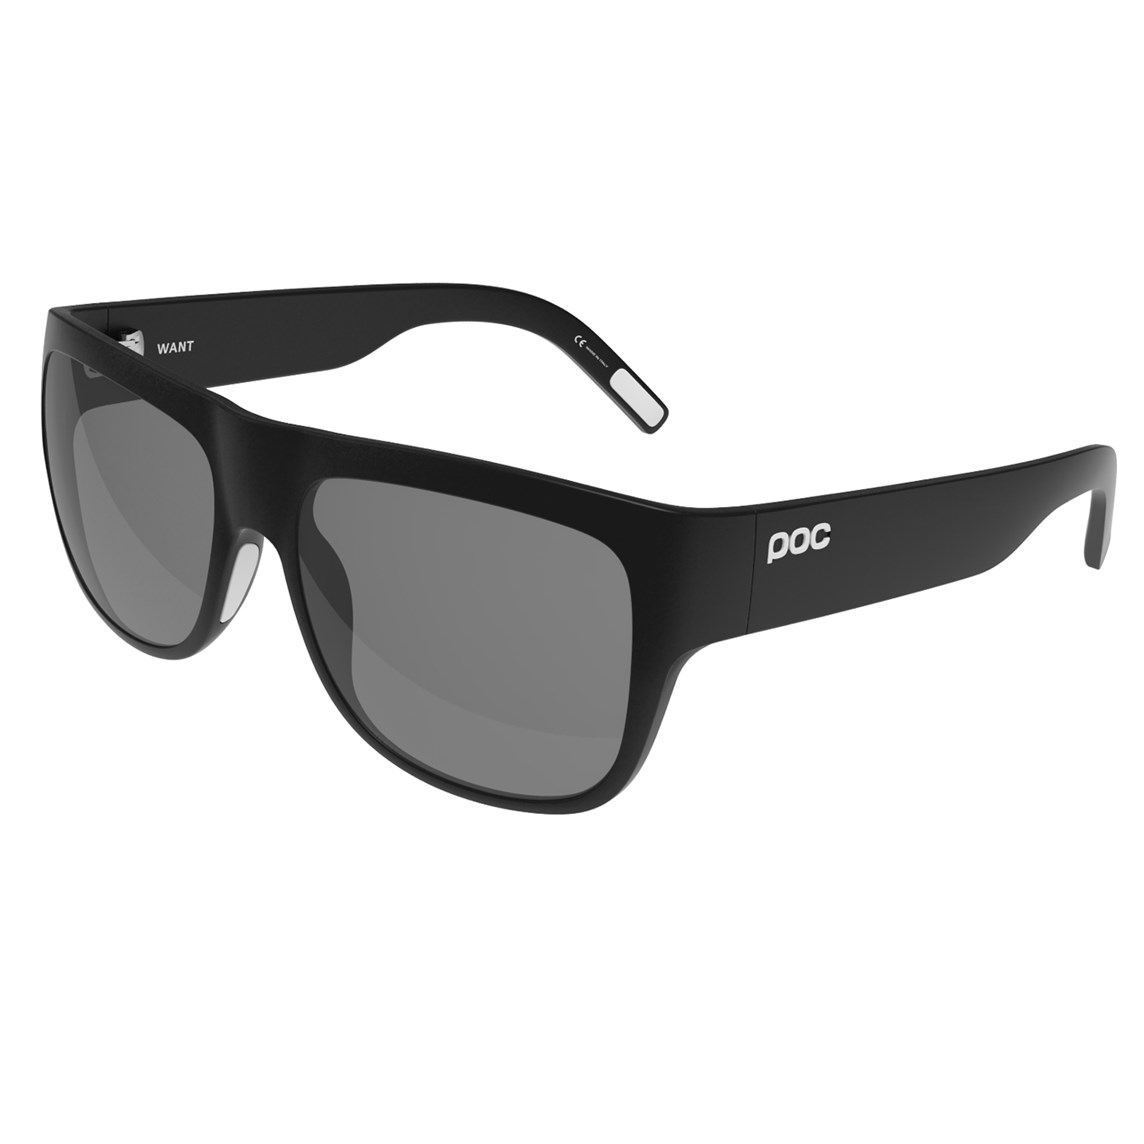 4d2034fef8f5 What Does Polarized Sunglasses Mean Yahoo Answers